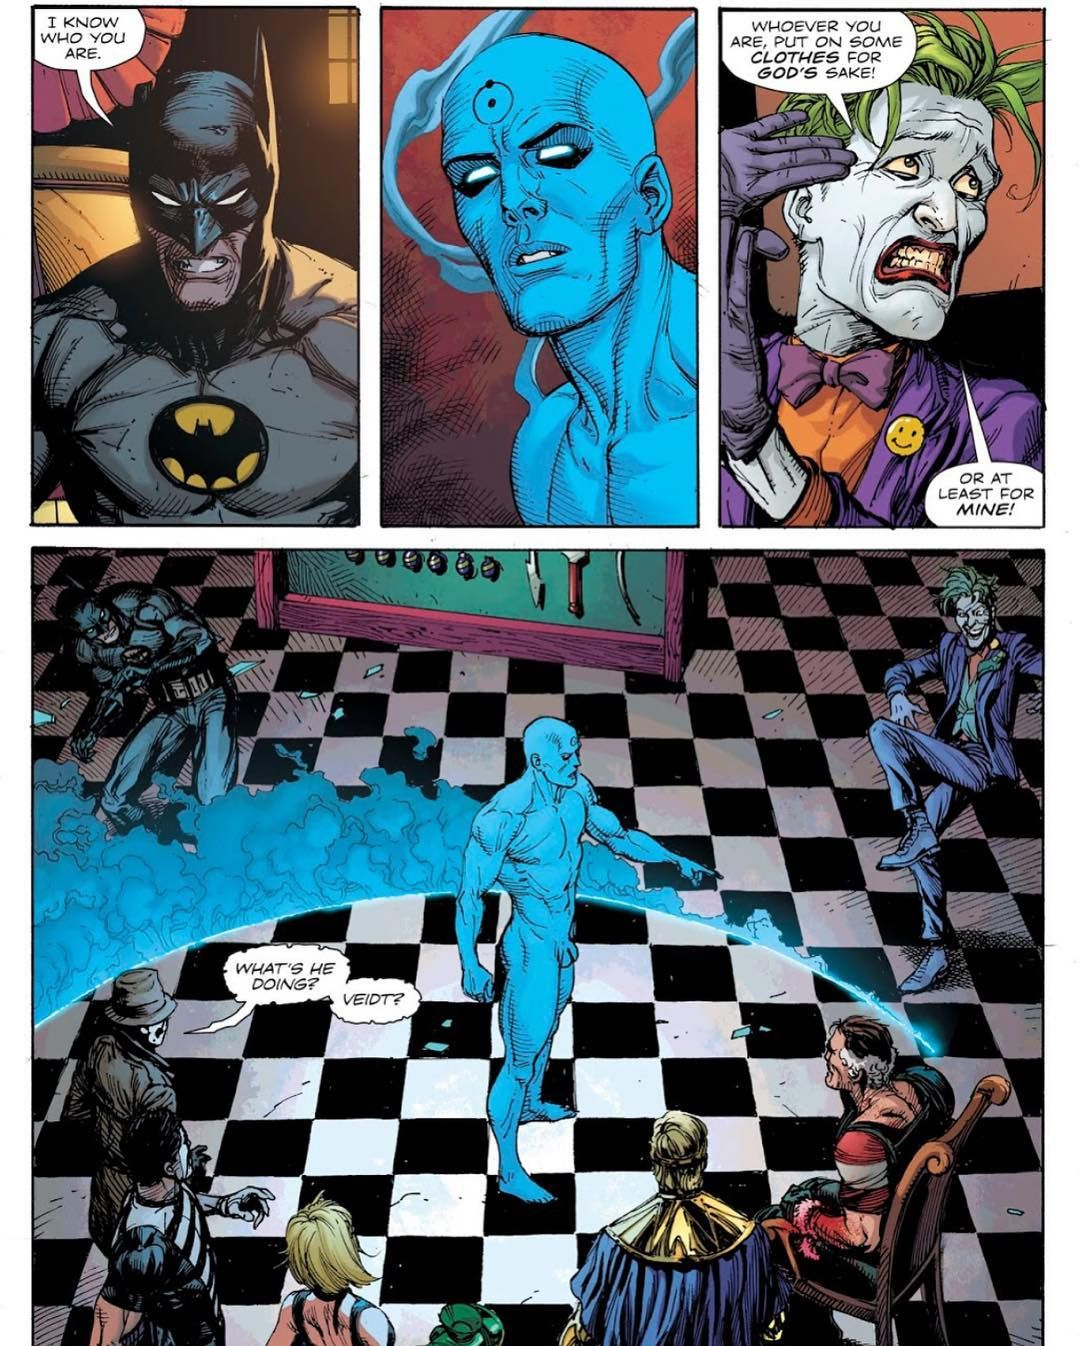 3e1e0de3e5b7e5 Lol Jokers reaction to seeing Dr.Manhattan for the first time is mine when I